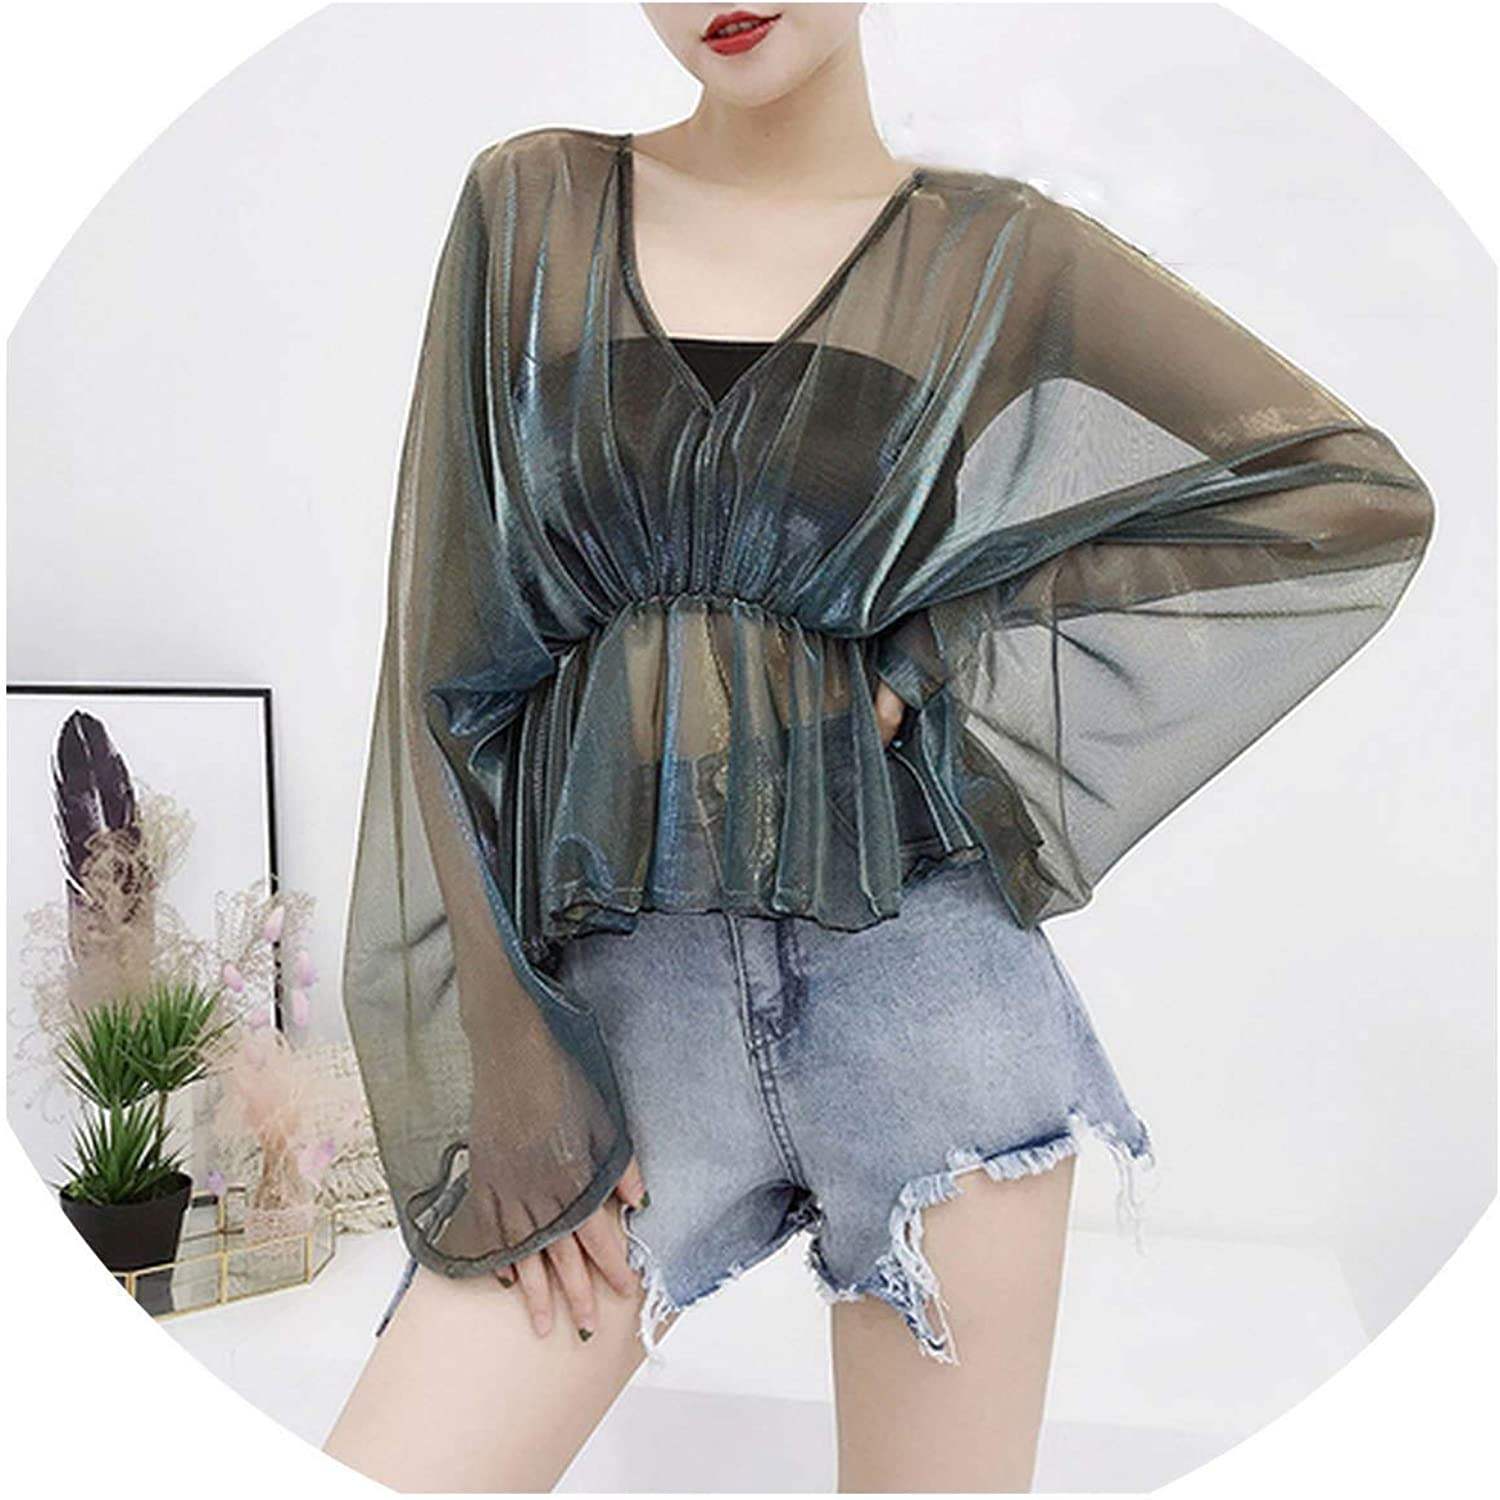 Womens Clothing Blouses Summer v-Neck Tops Sun Protection Female Perspective Thin Shirts